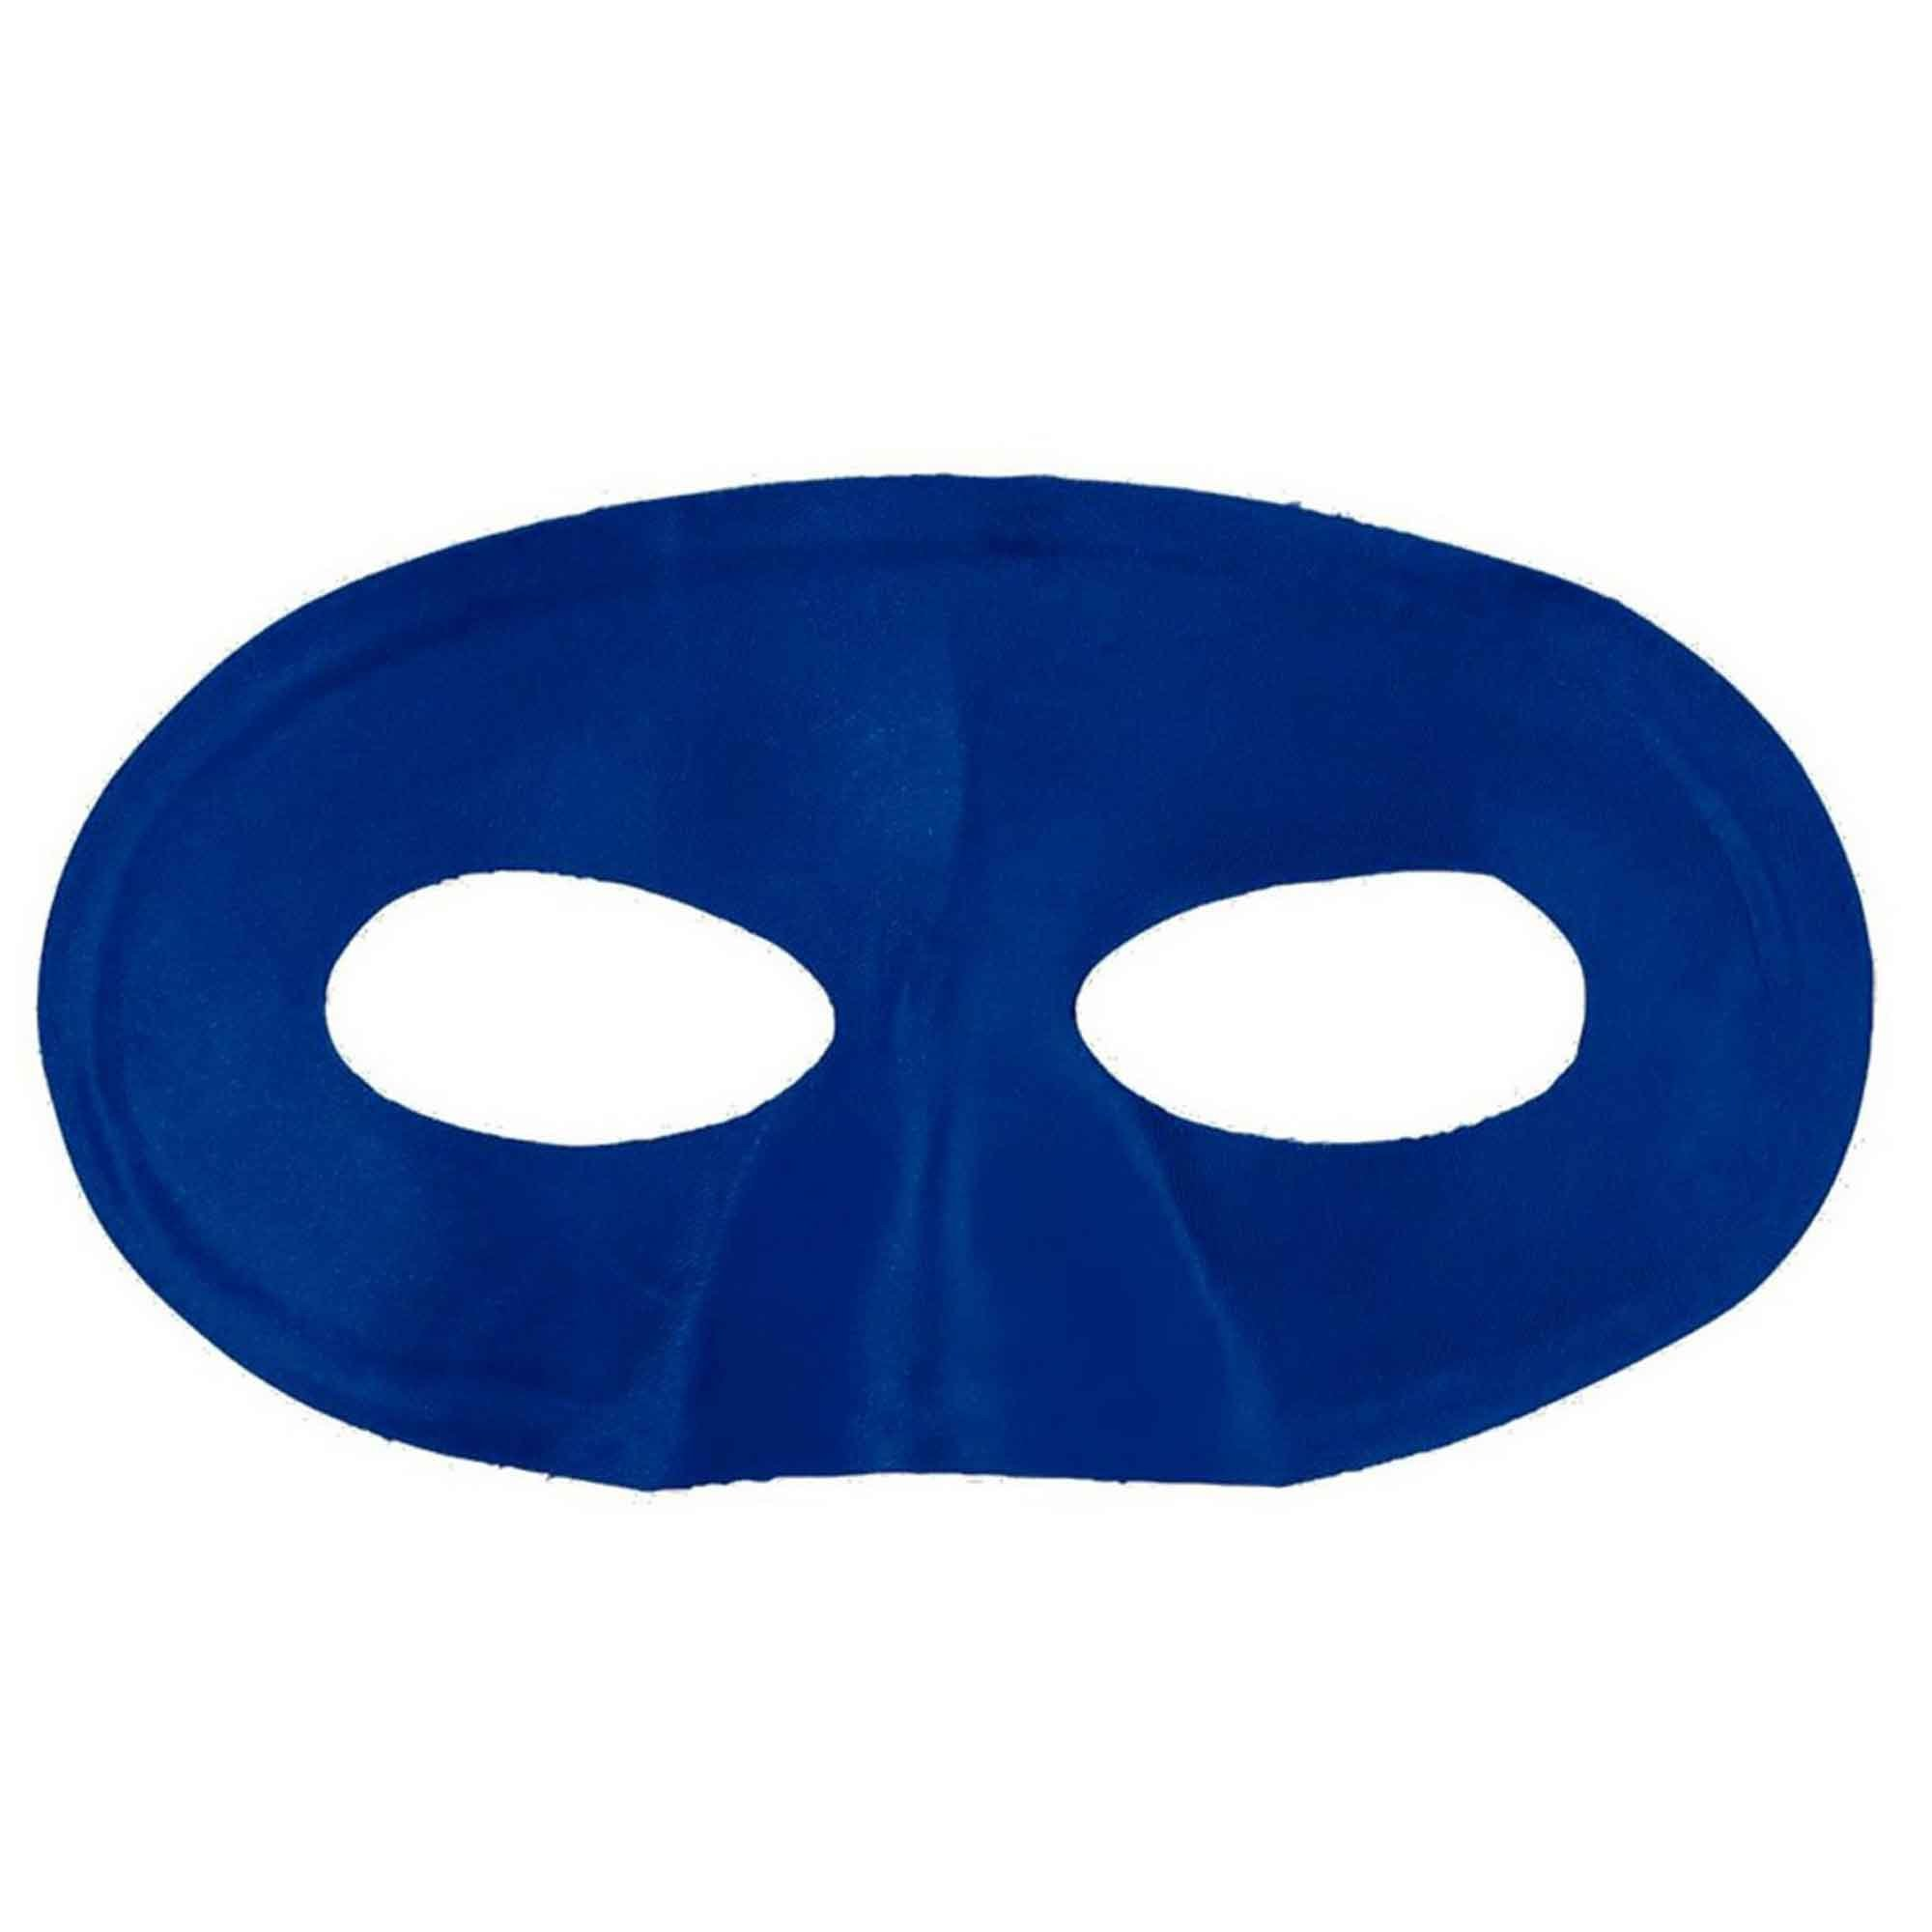 Eye Mask - Navy